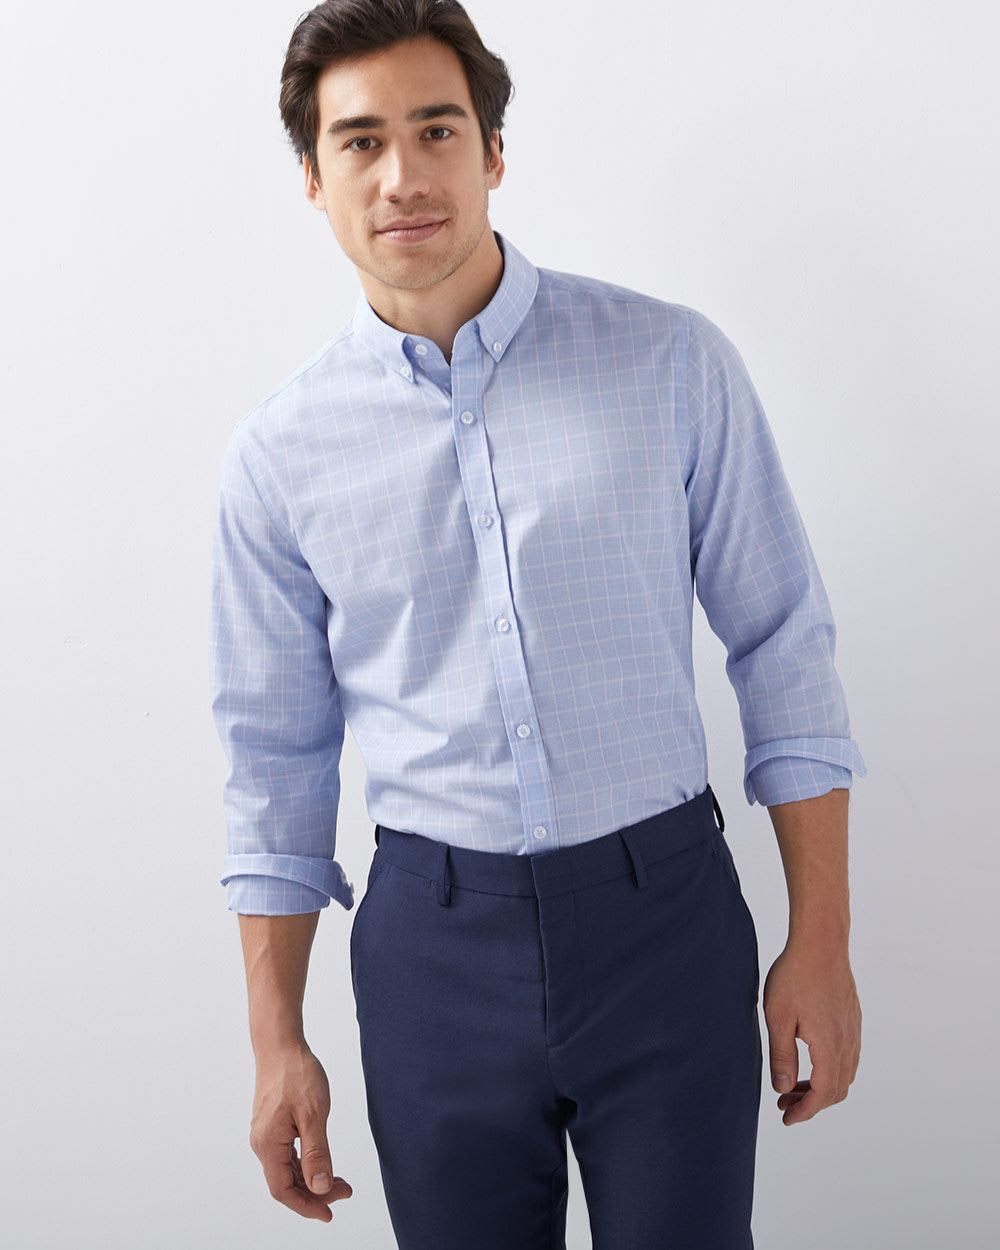 Athletic Fit Checkered Dress Shirt Rwco